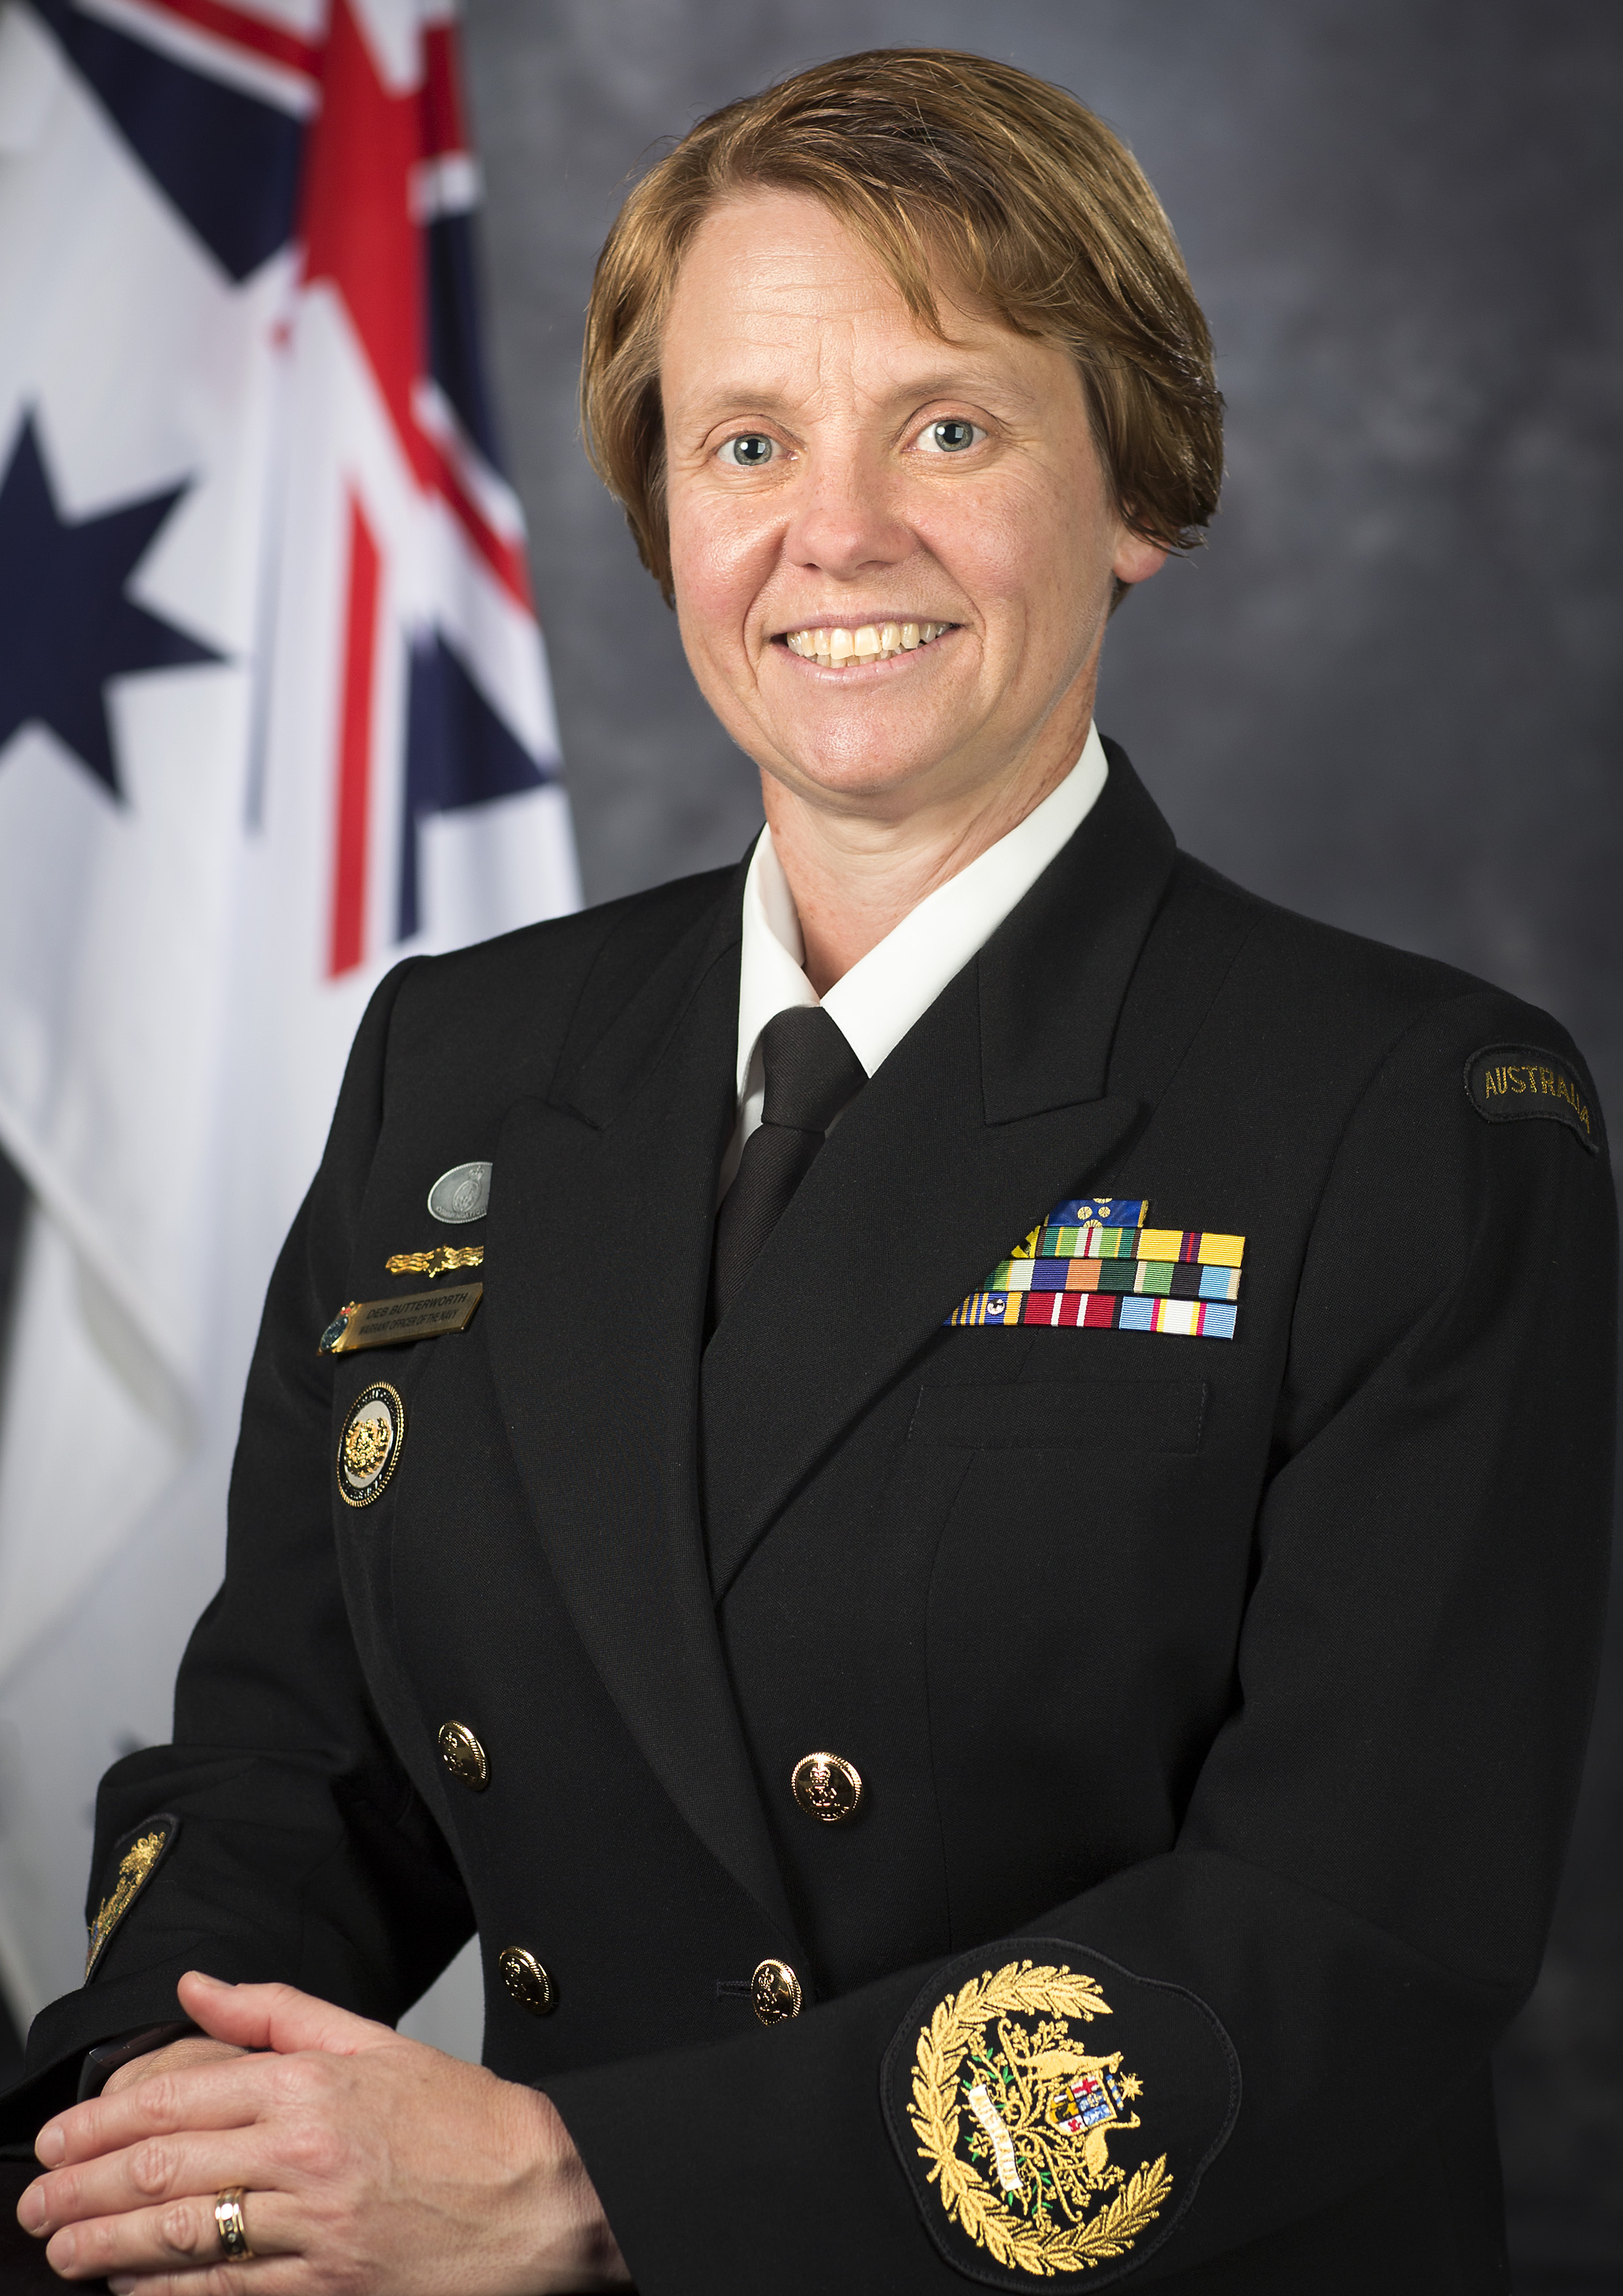 Warrant Officer of the Navy, Deb Butterworth, OAM, CSM and Bar